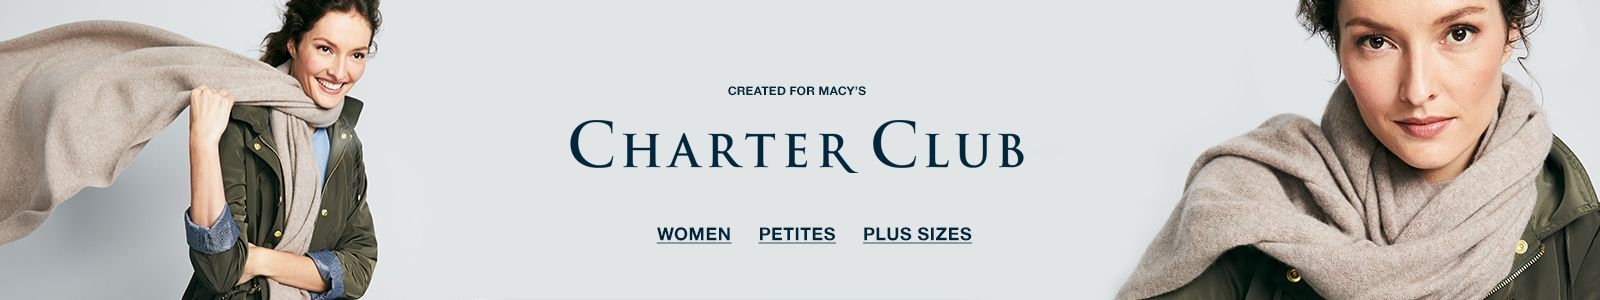 Created for Macy's, Charter Club, Women, Petites, Plus Sizes